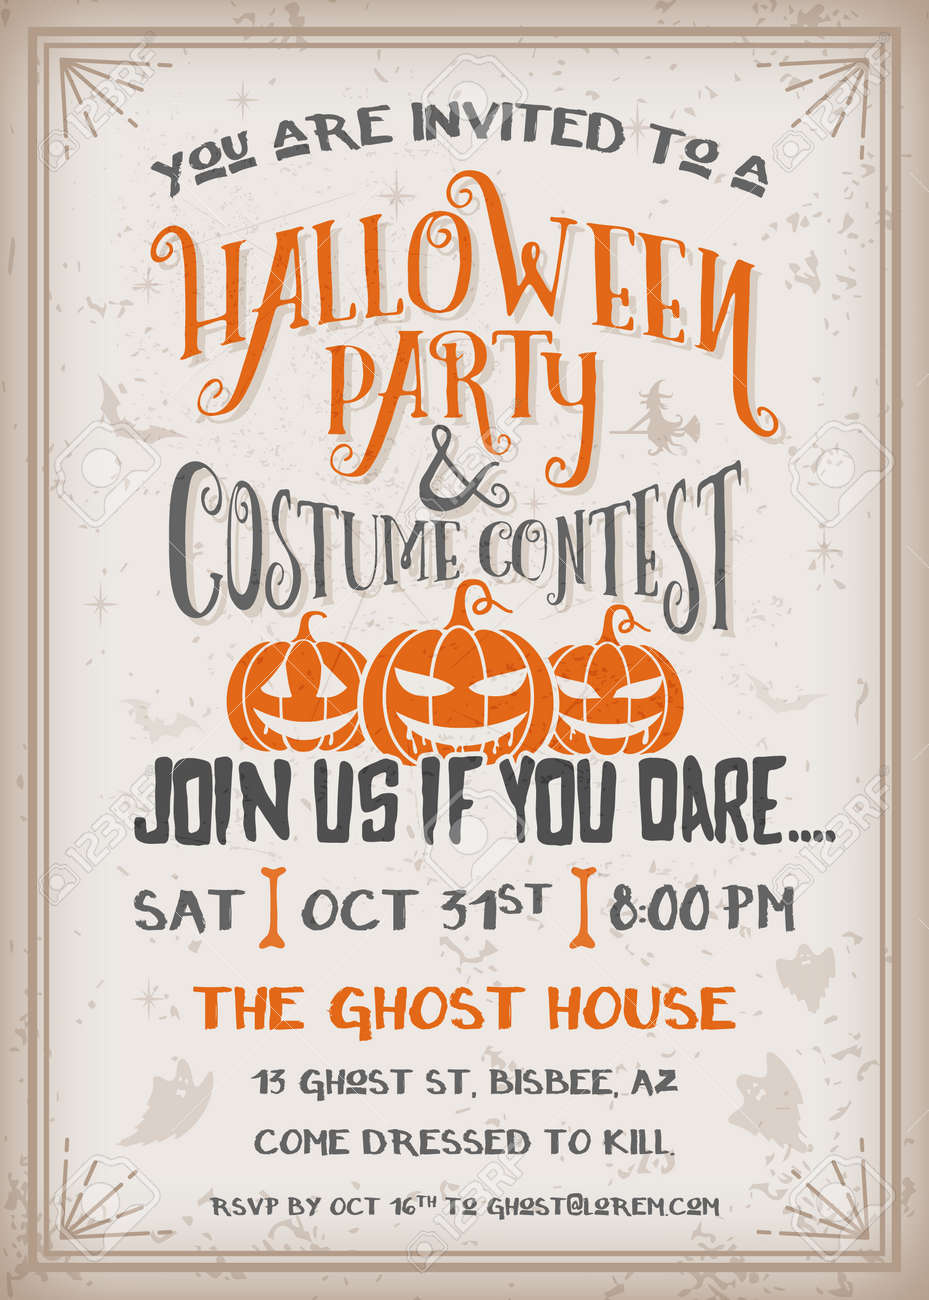 Halloween Party And Costume Contest Invitation With Scary Pumpkins ...